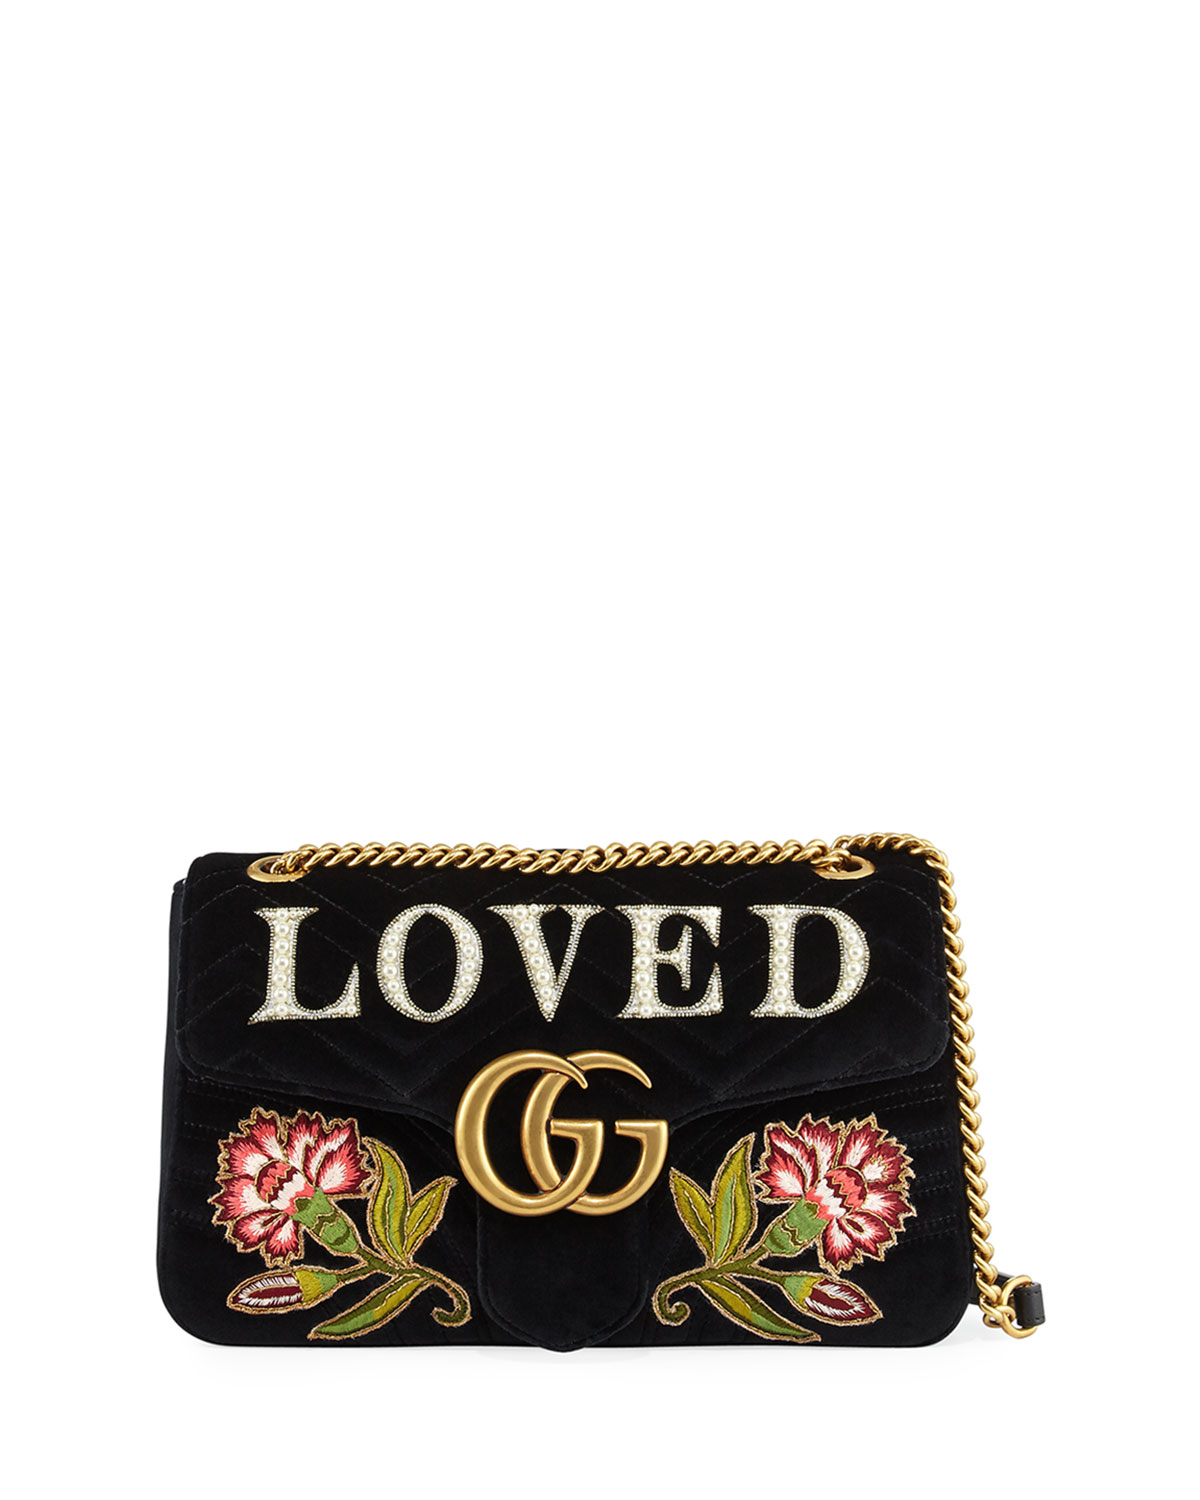 dc619b9865f Gucci GG Marmont Medium Embroidered Velvet Shoulder Bag